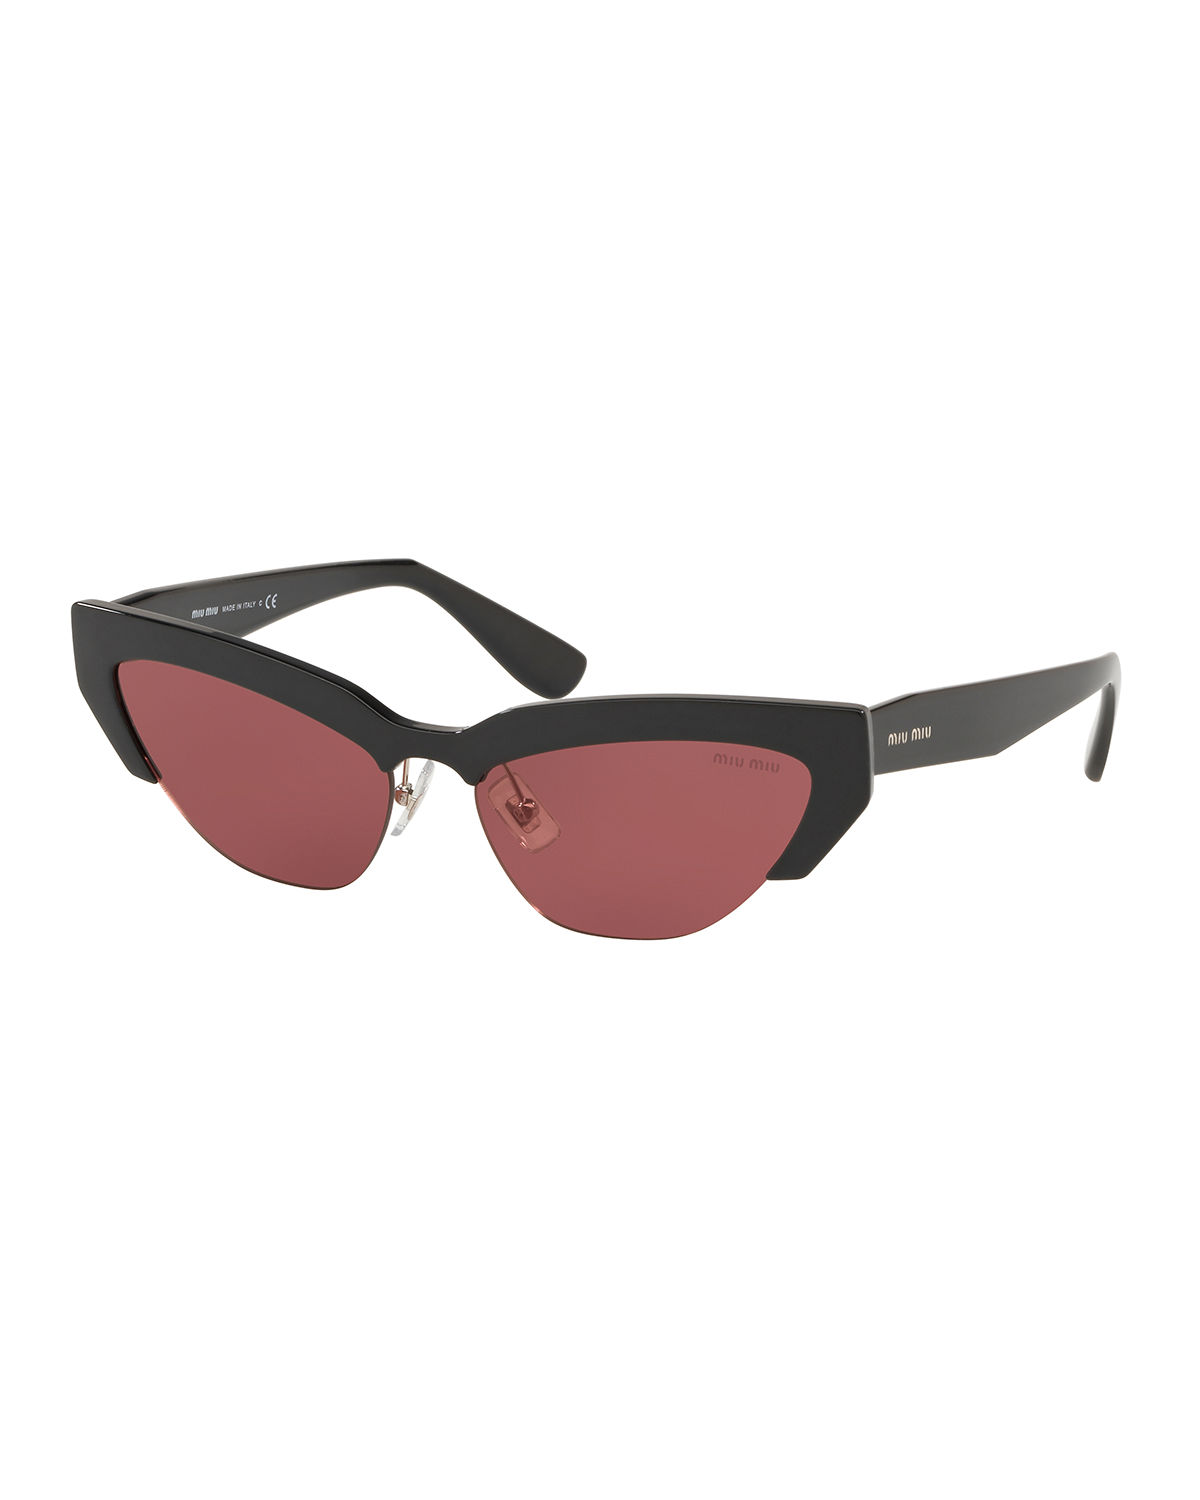 fdb5162bc09 Miu Miu Semi-Rimless Cat-Eye Sunglasses